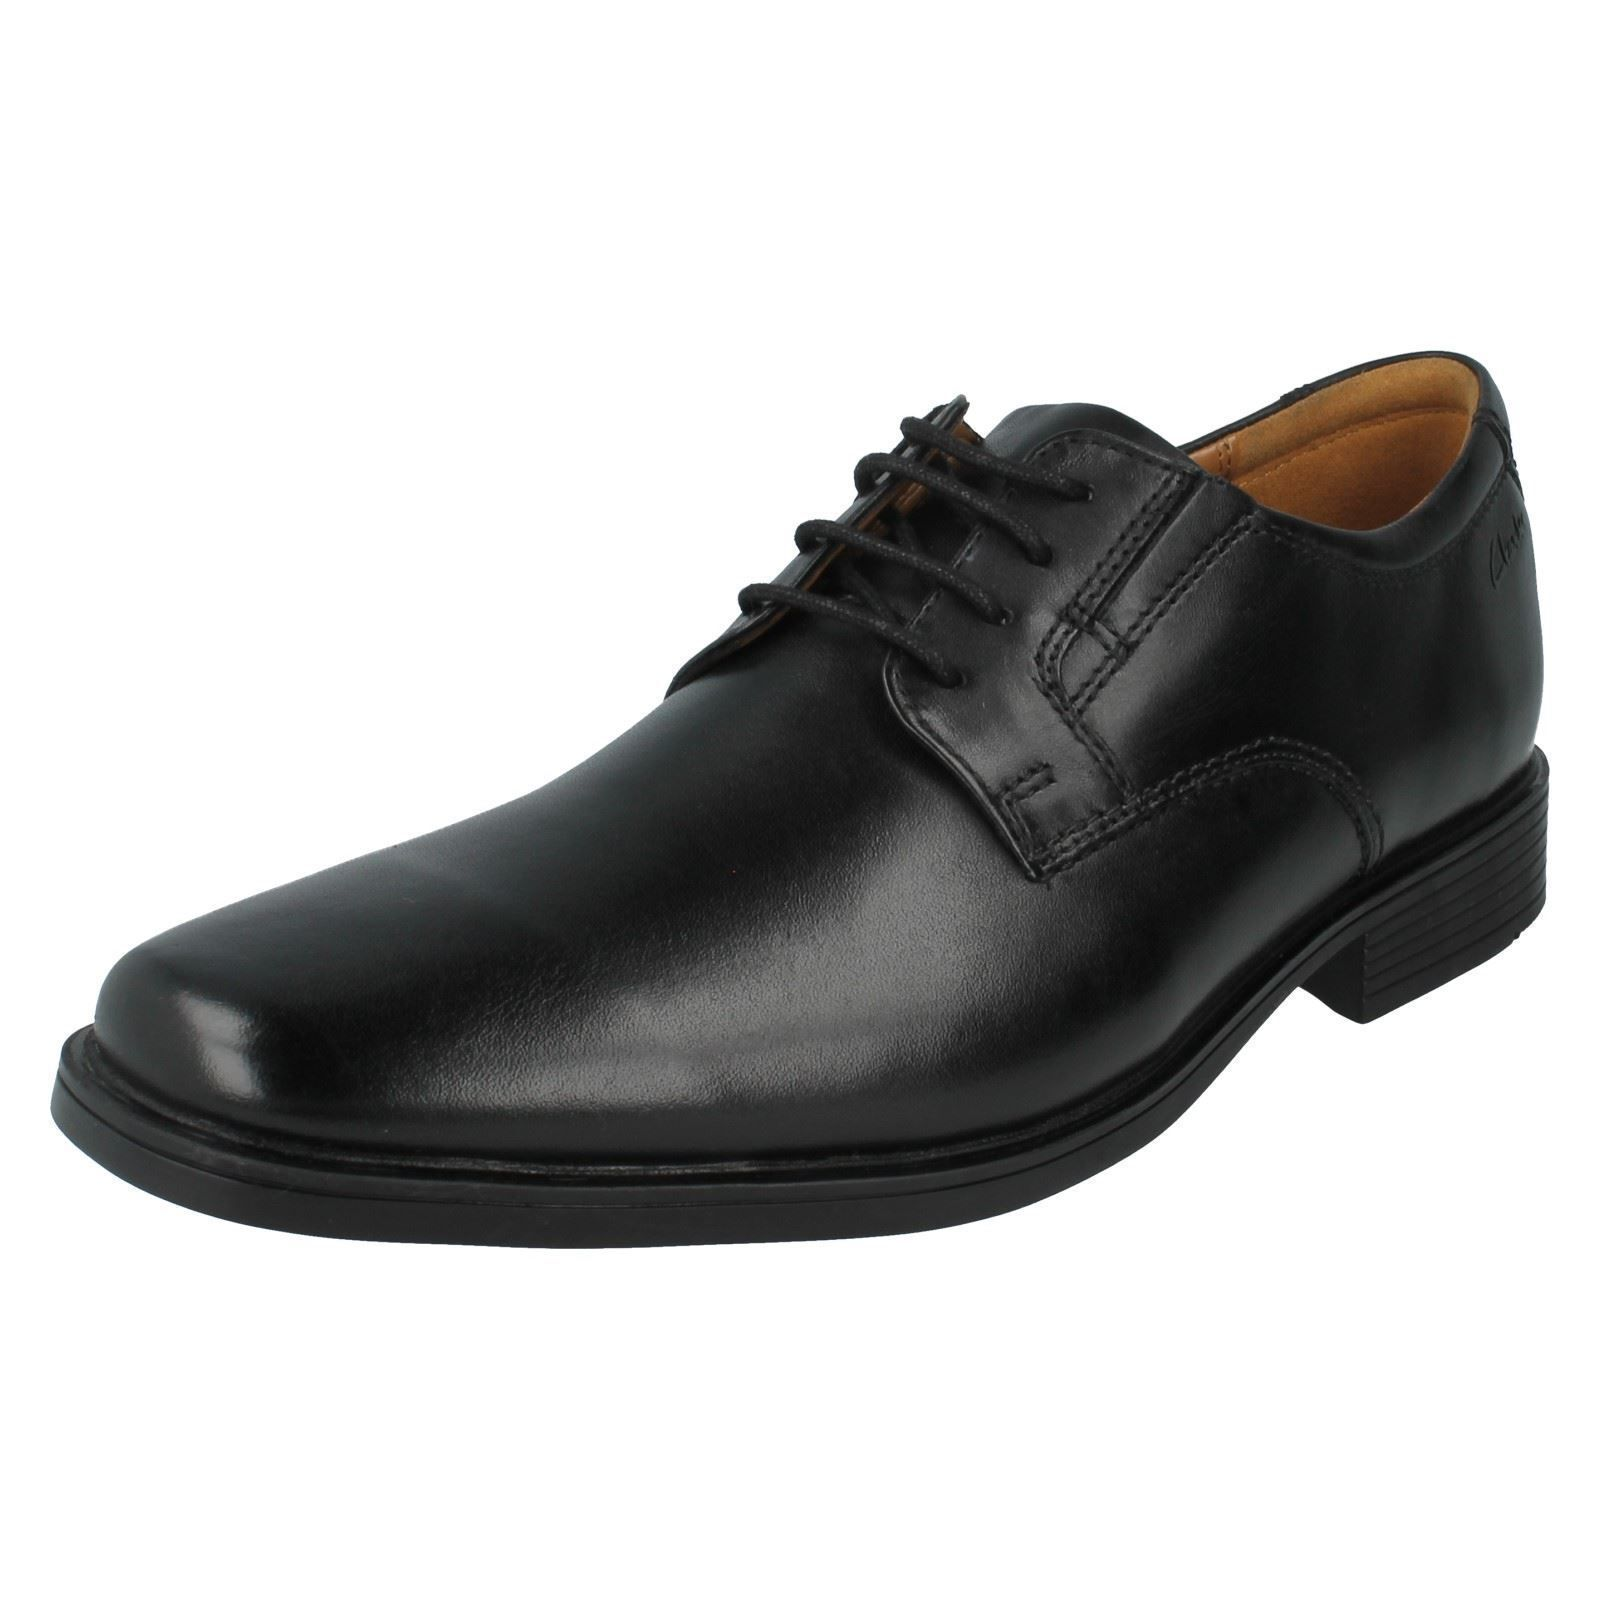 Clarks Da Uomo Stringati In Plain Pelle Shoes 'Til DEN Plain In